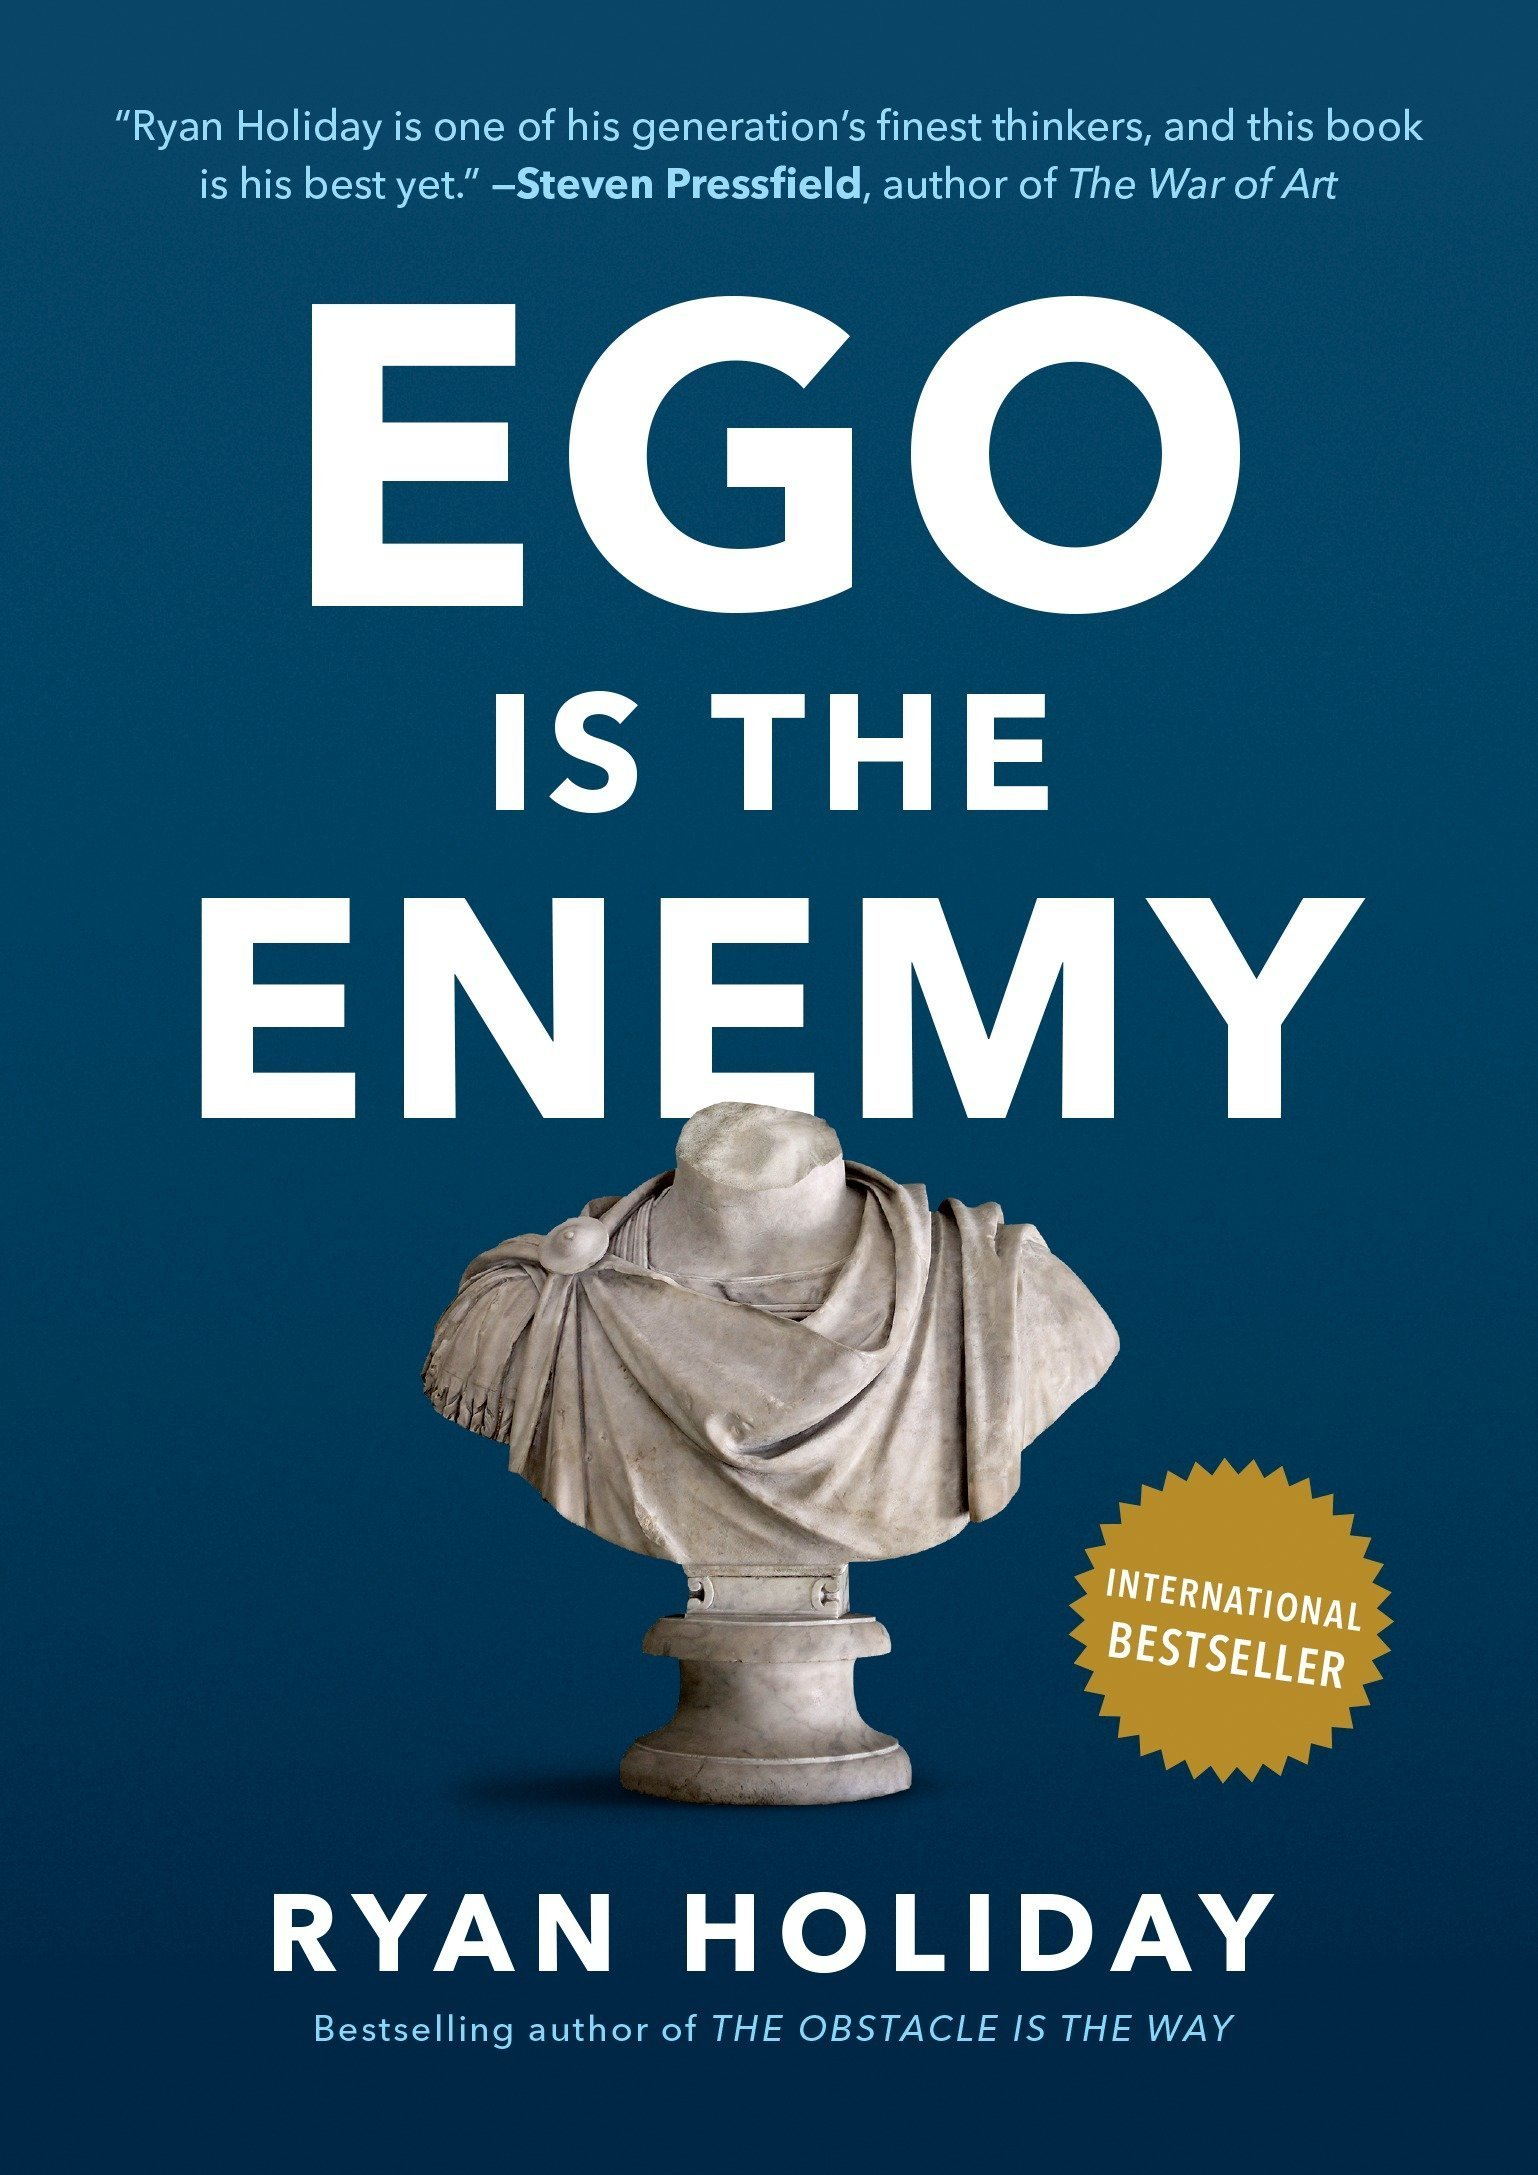 Ego_is_the_enemy